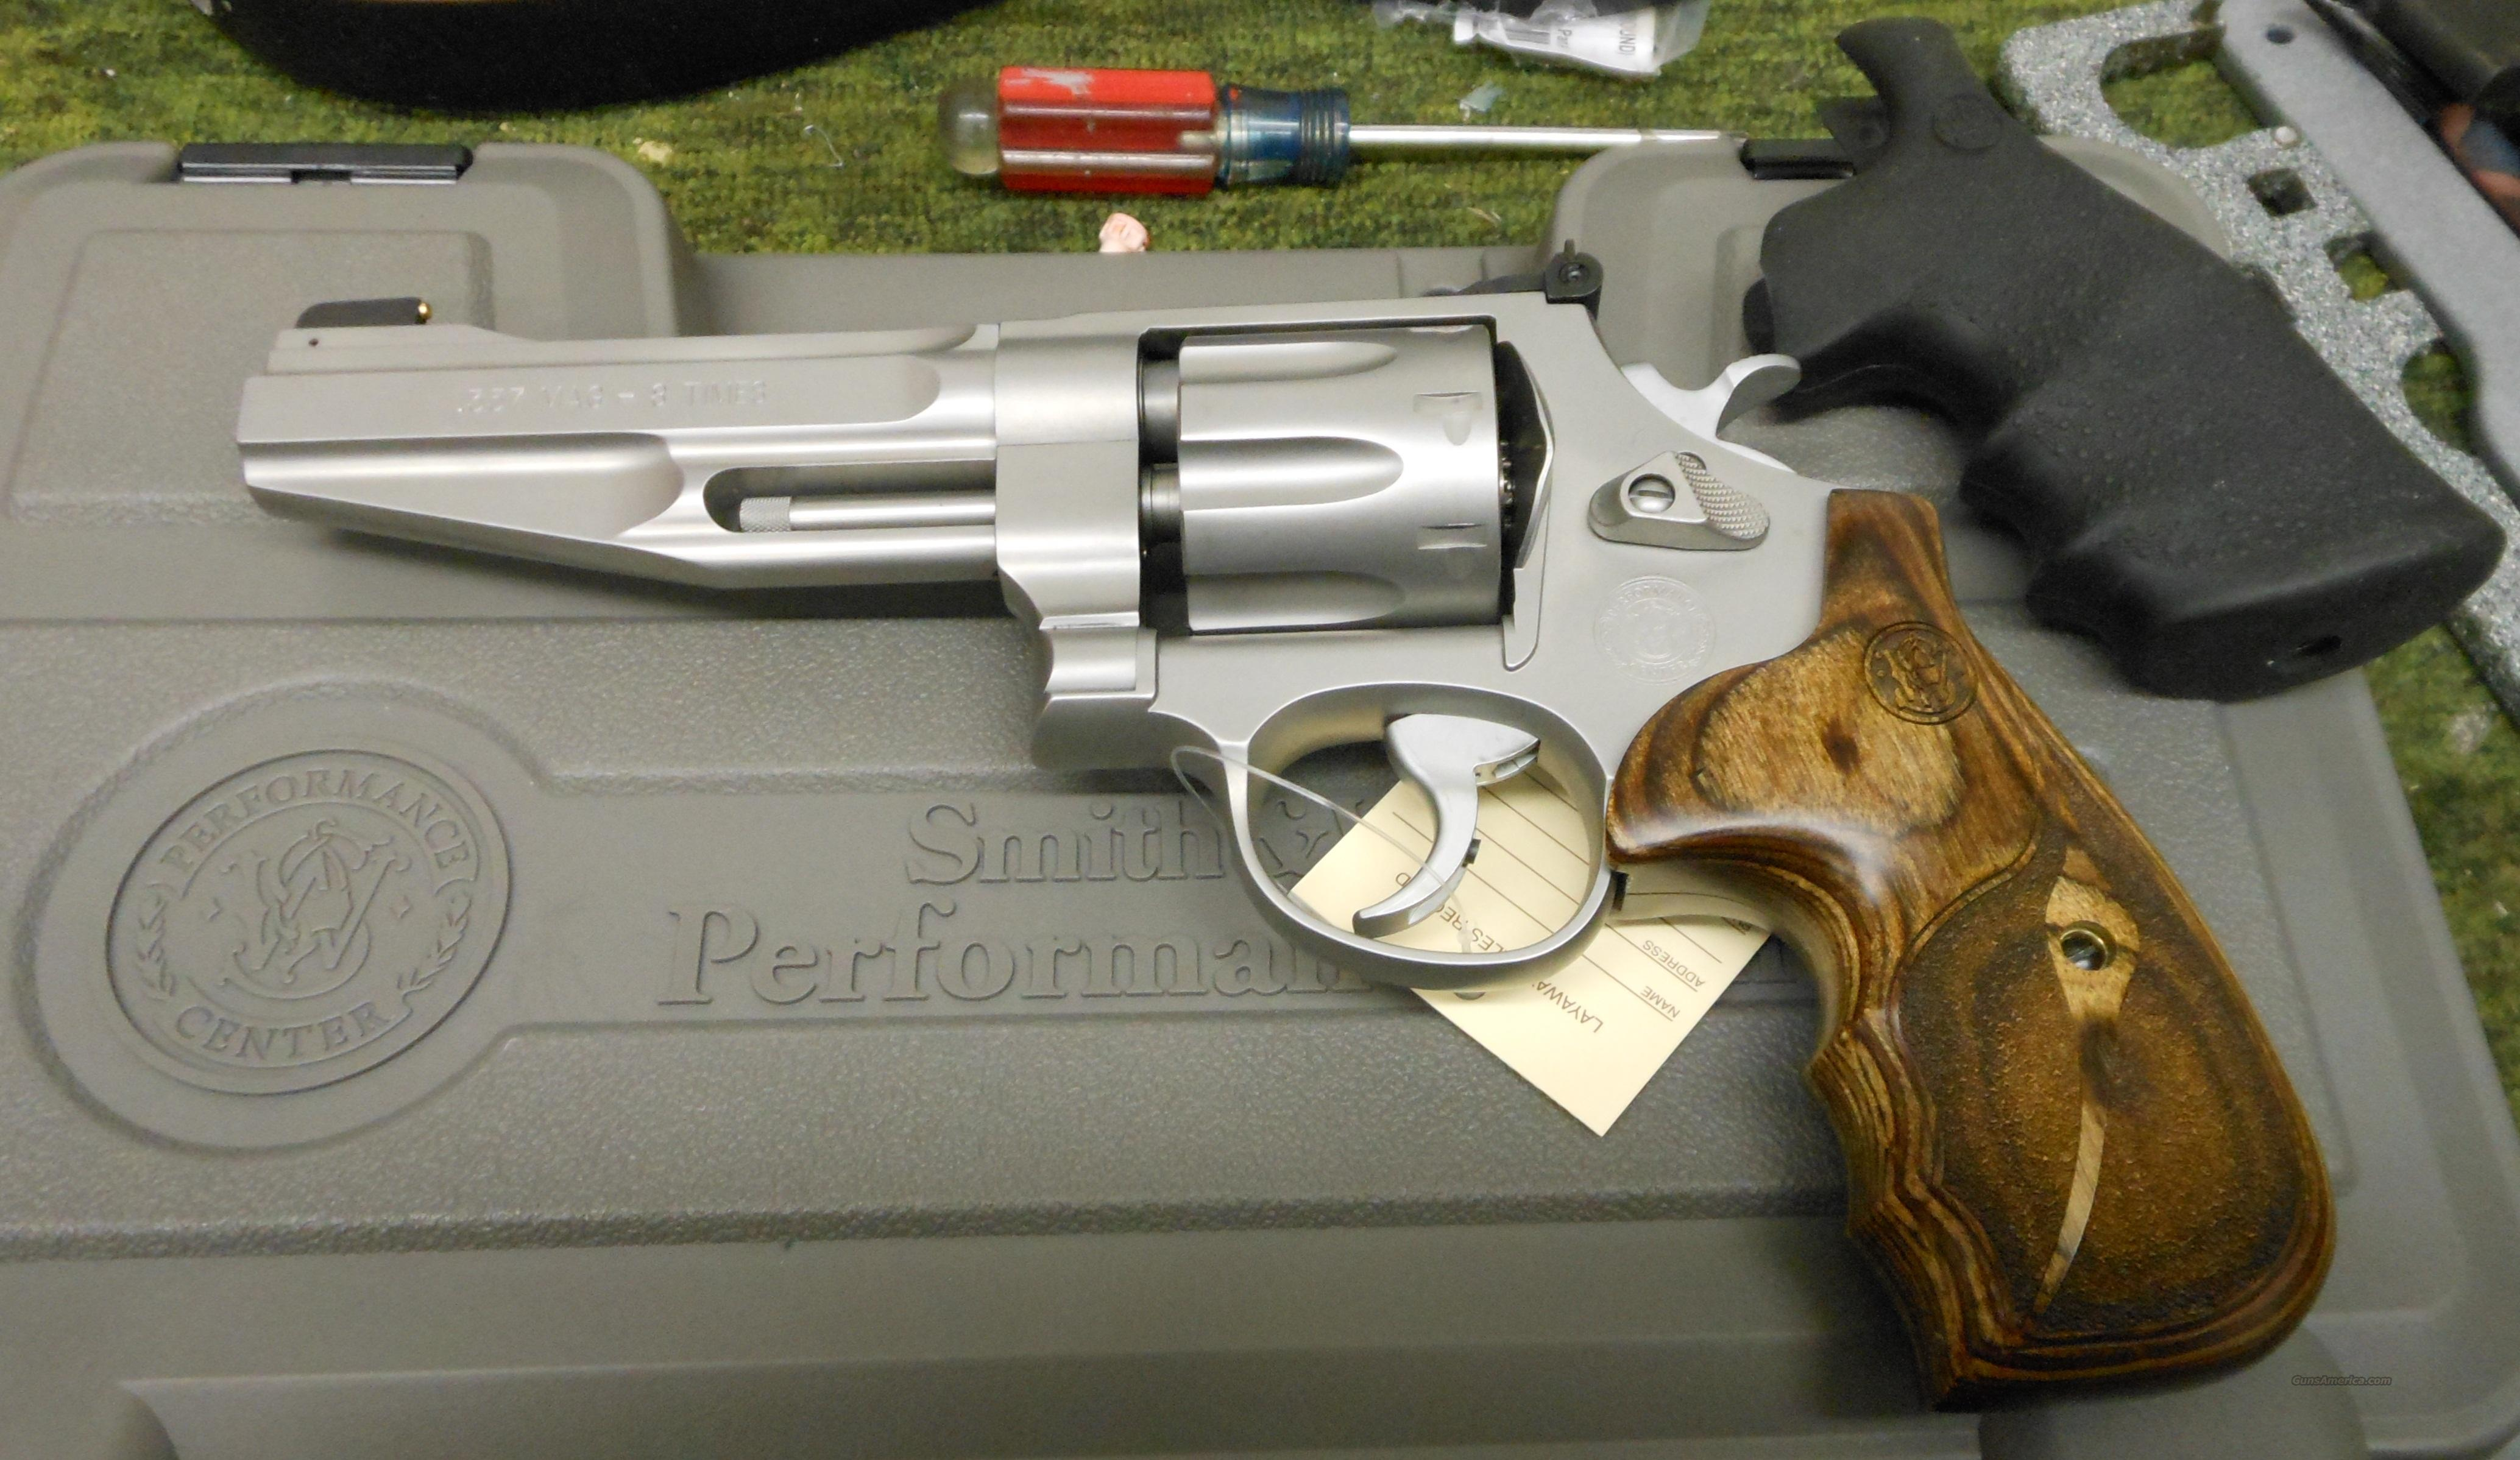 SMITH & WESSON 627 PC 8 SHOT 357 MAGNUM REVOLVER (170210)  Guns > Pistols > Smith & Wesson Revolvers > Performance Center